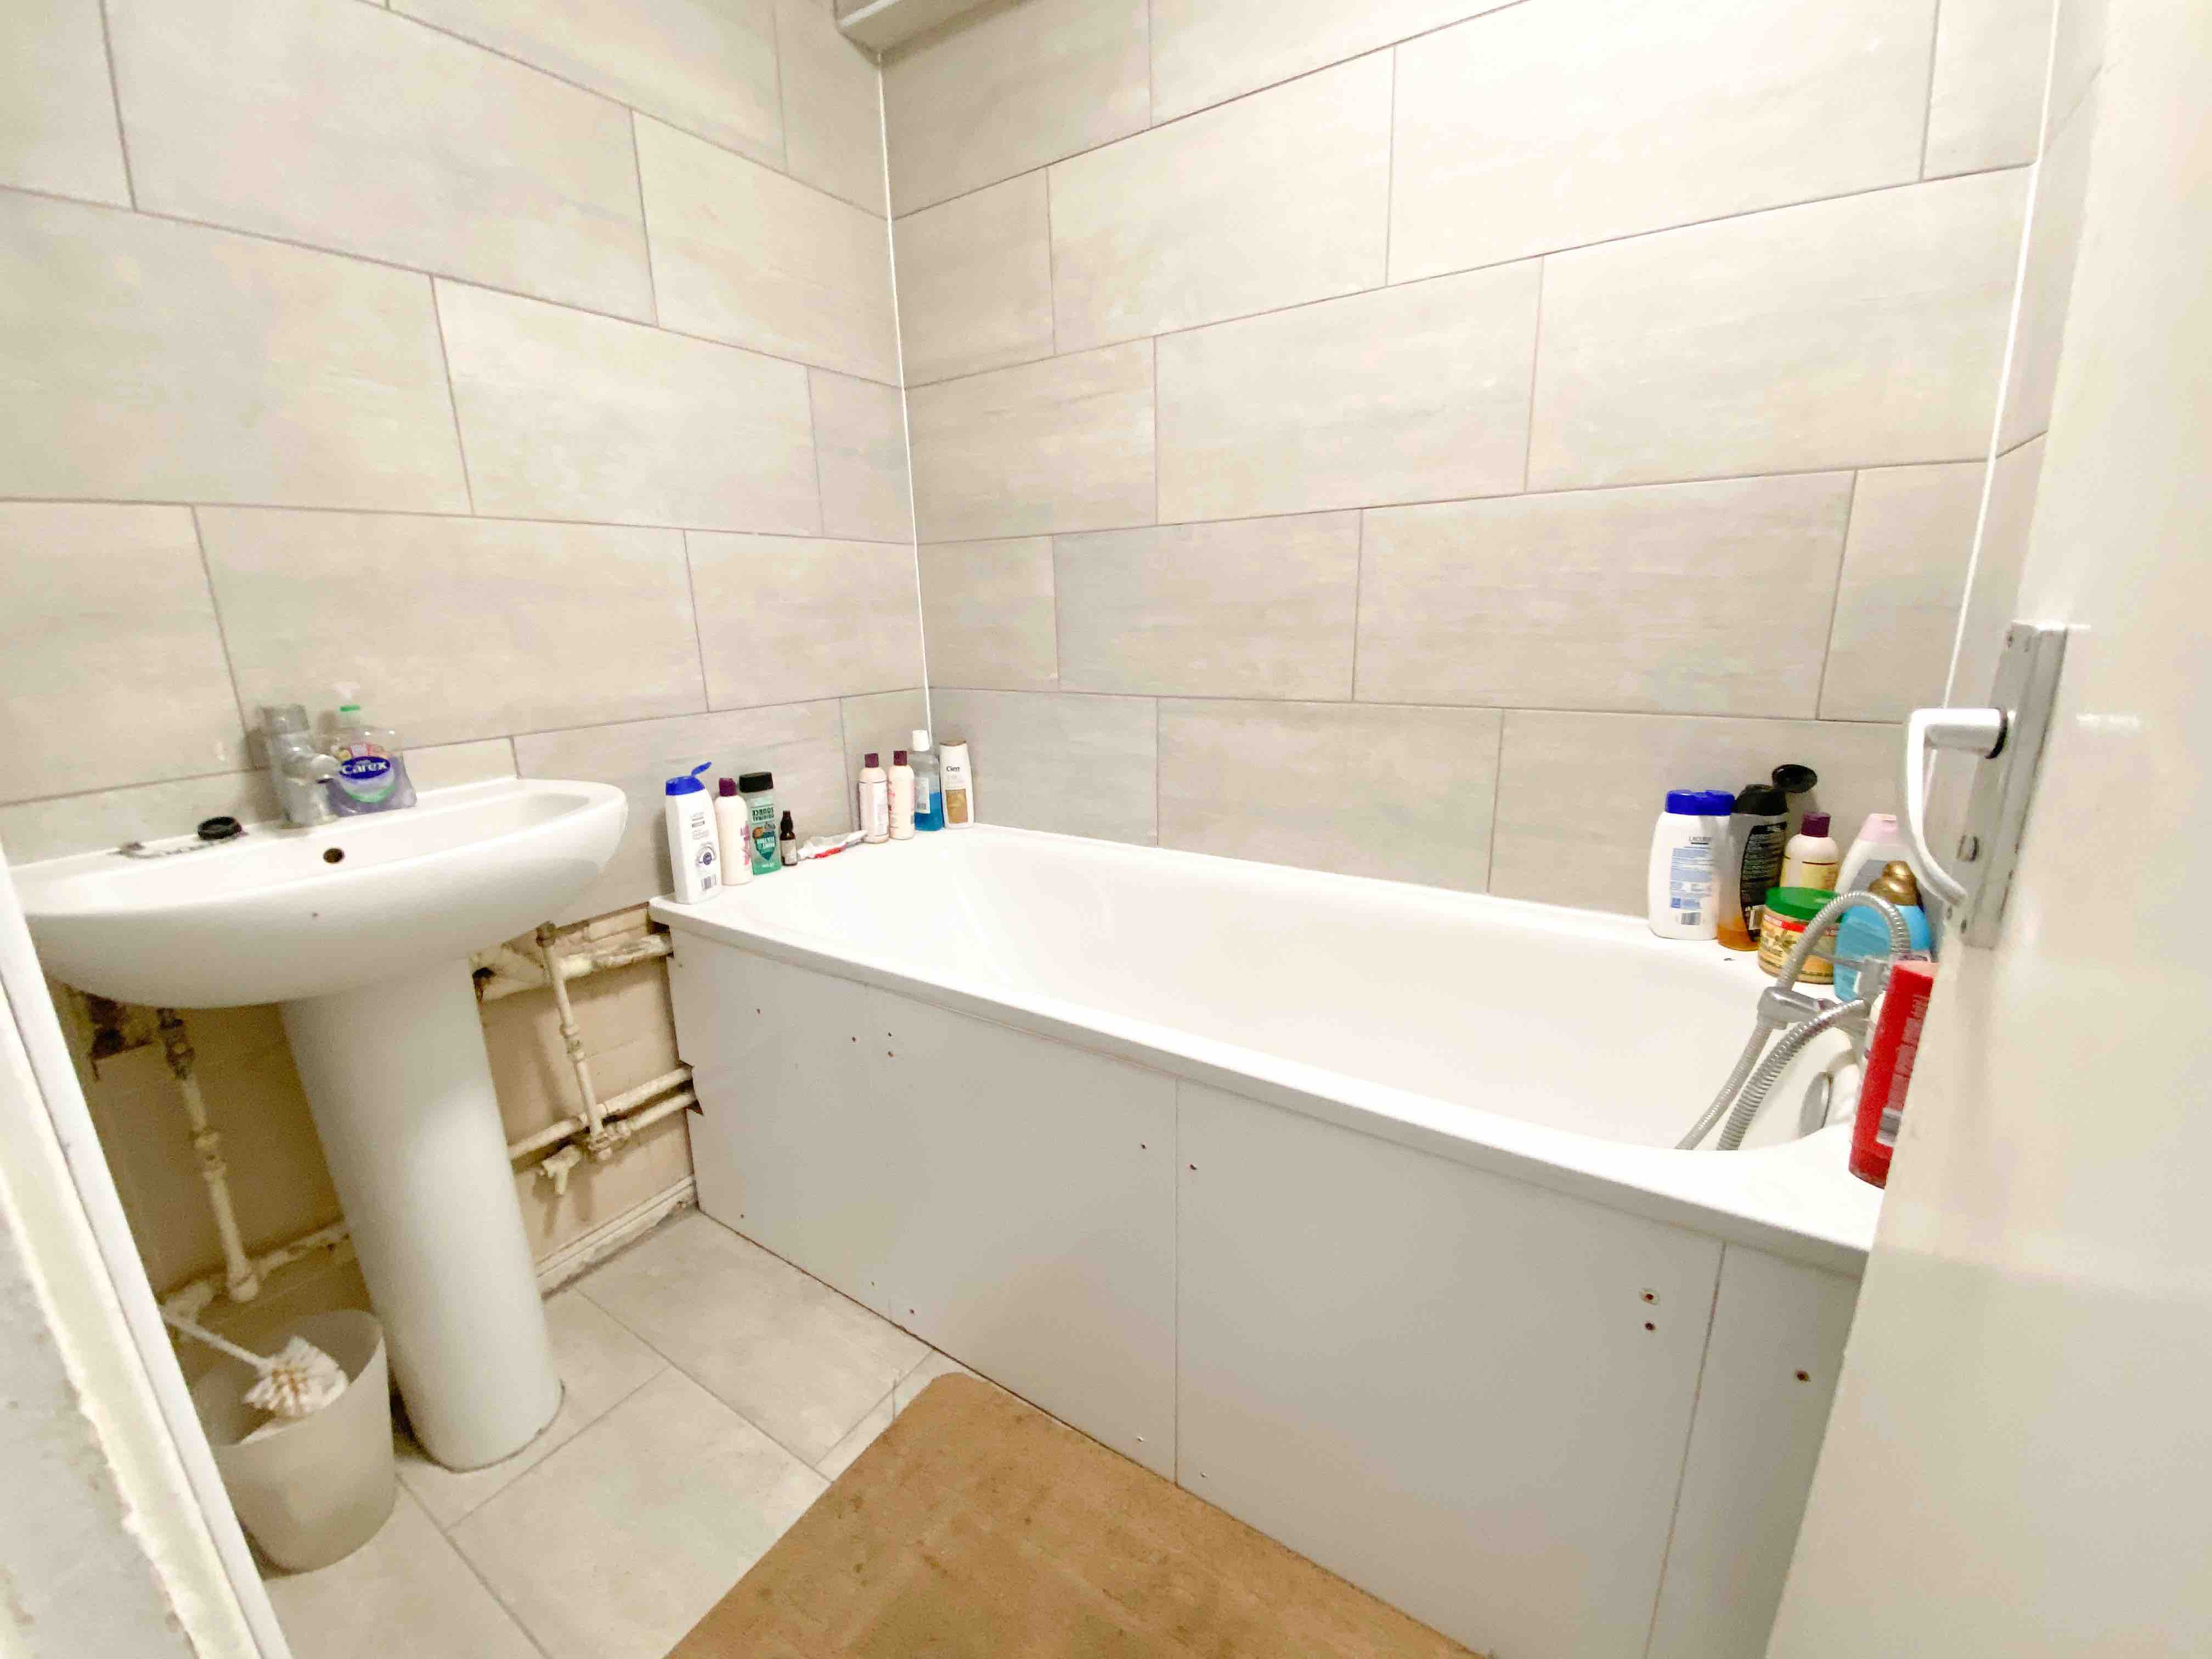 2 rooms in Chalk Farm, Kentish Town, NW5 4BA RoomsLocal image